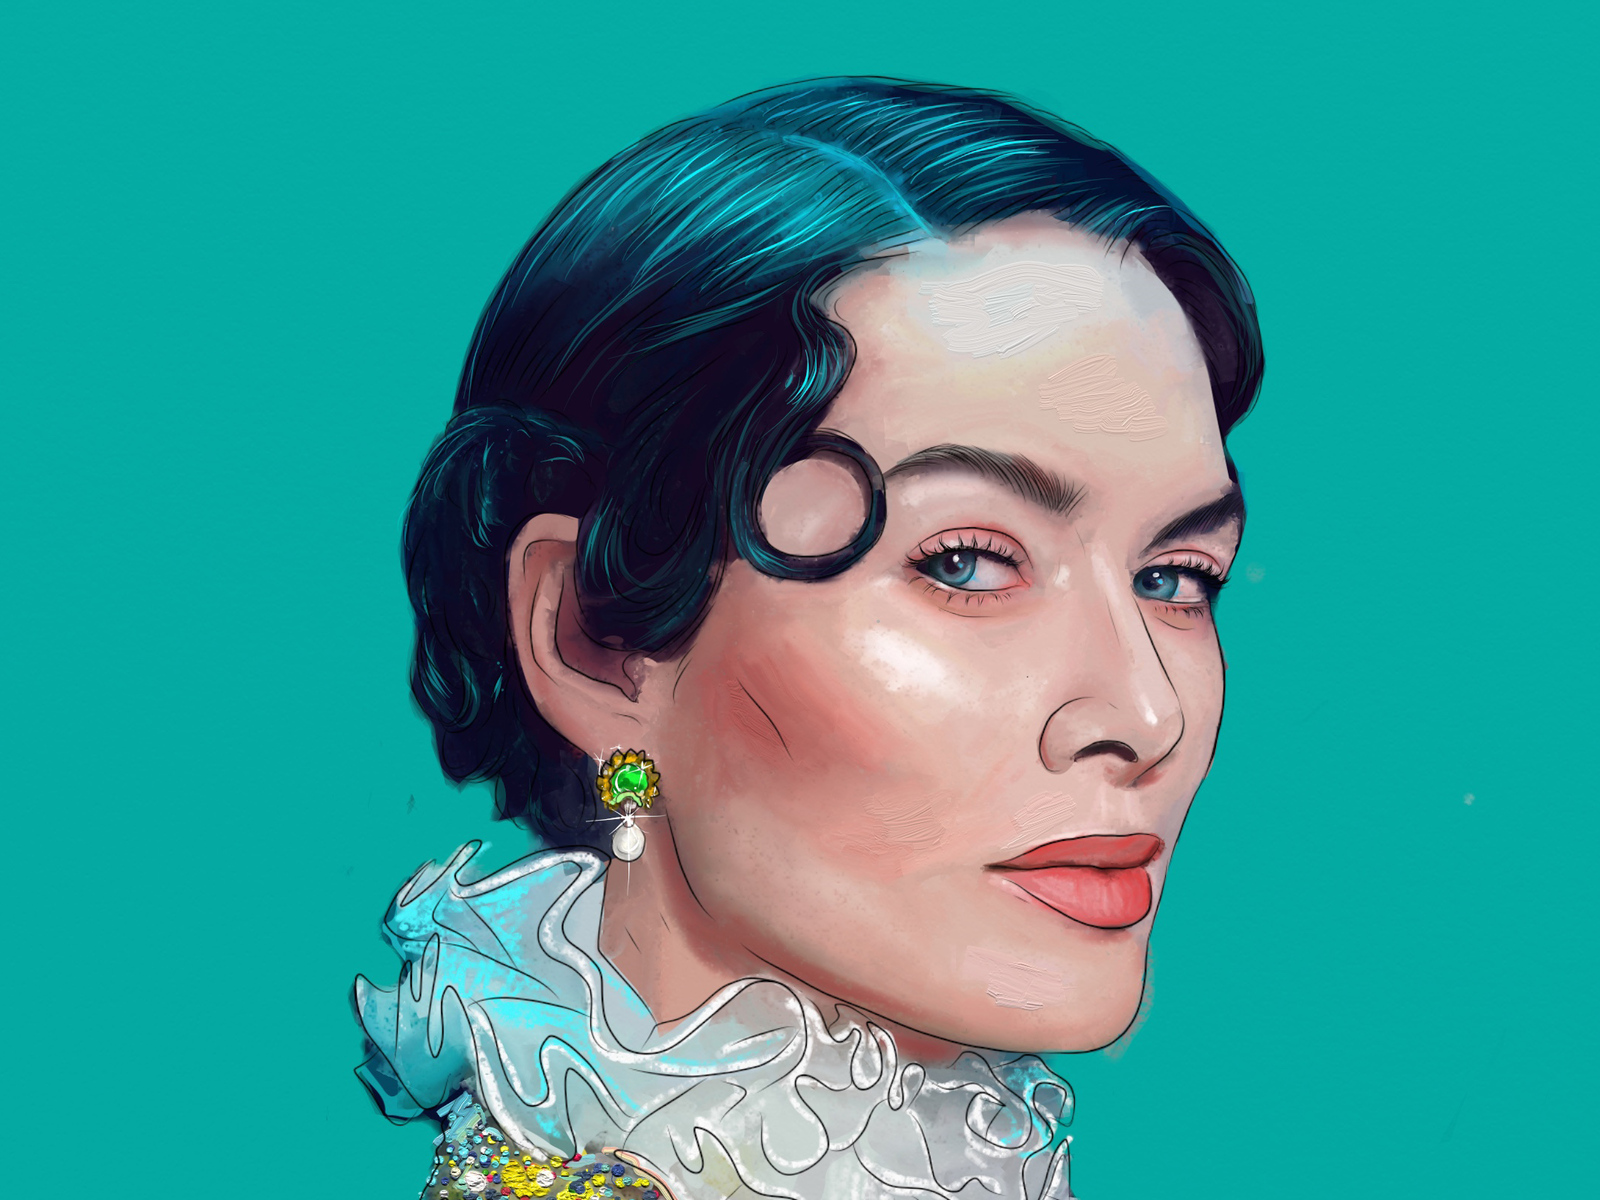 1600x1200 Cersei Lannister Digital Art 1600x1200 Resolution